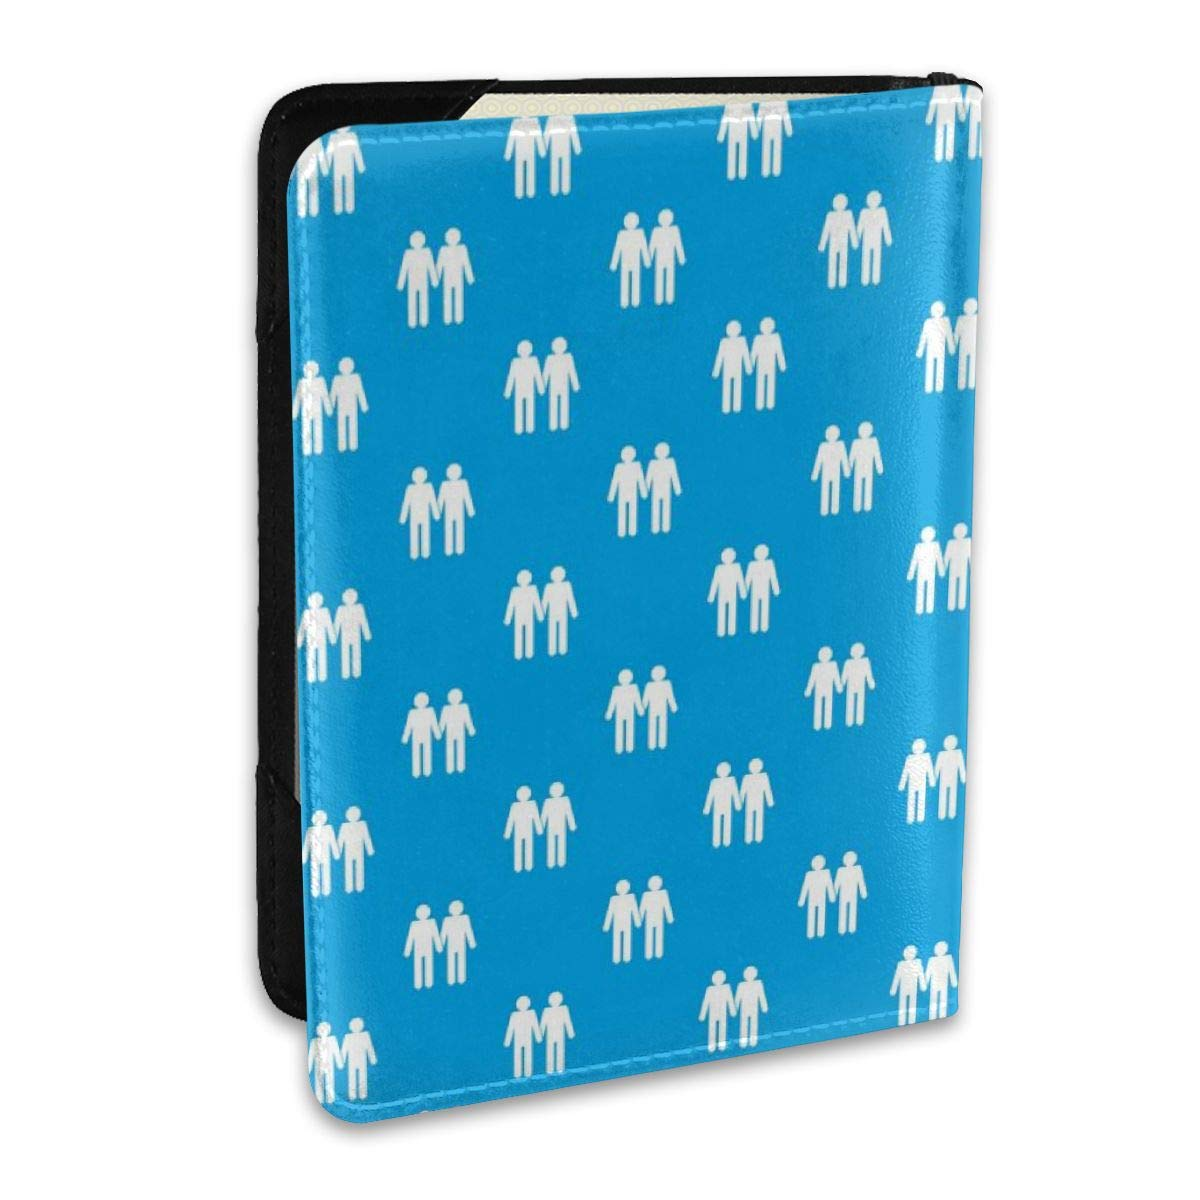 Biahos Leather Passport Cover Two Man Gay Pattern Wallet For Passport Case